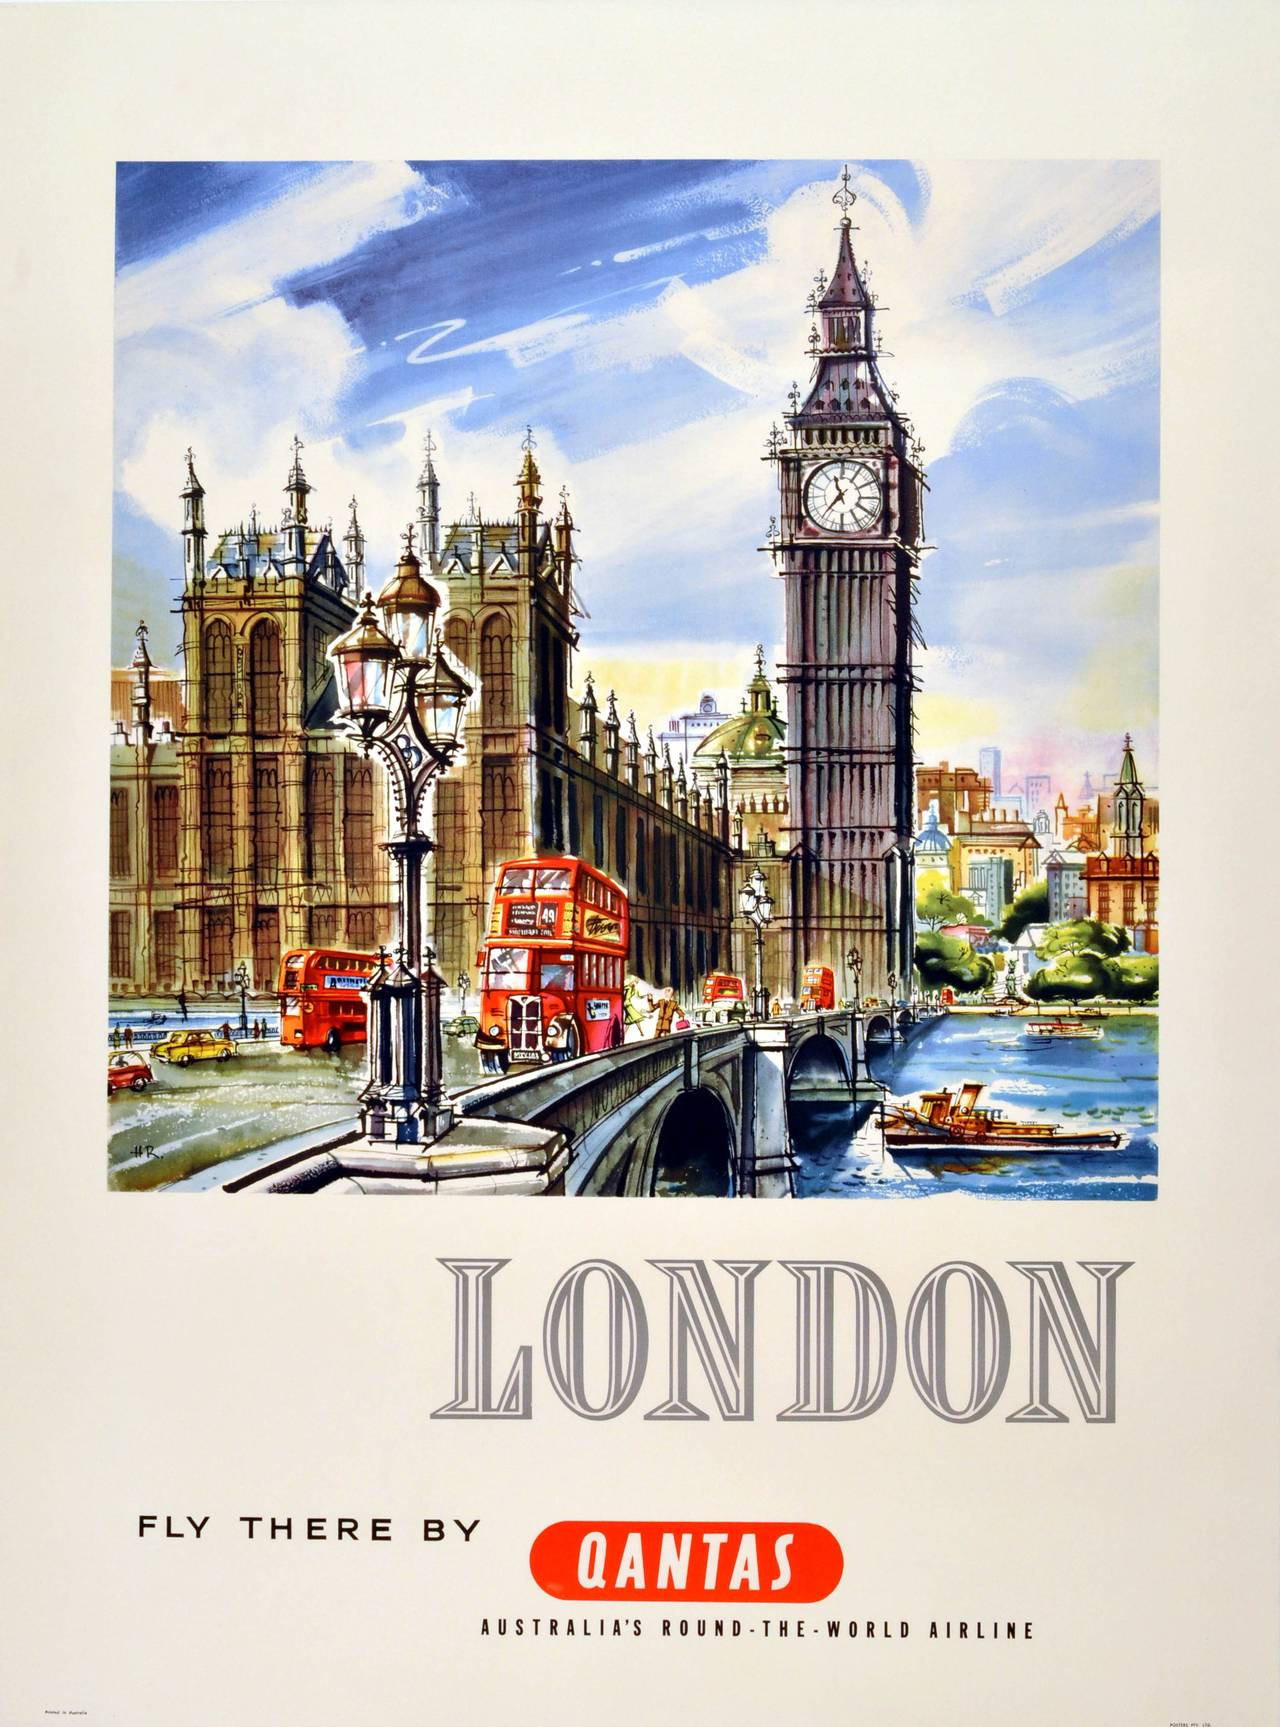 Original Vintage 1950s Travel Advertising Poster: London - Fly There By  Qantas